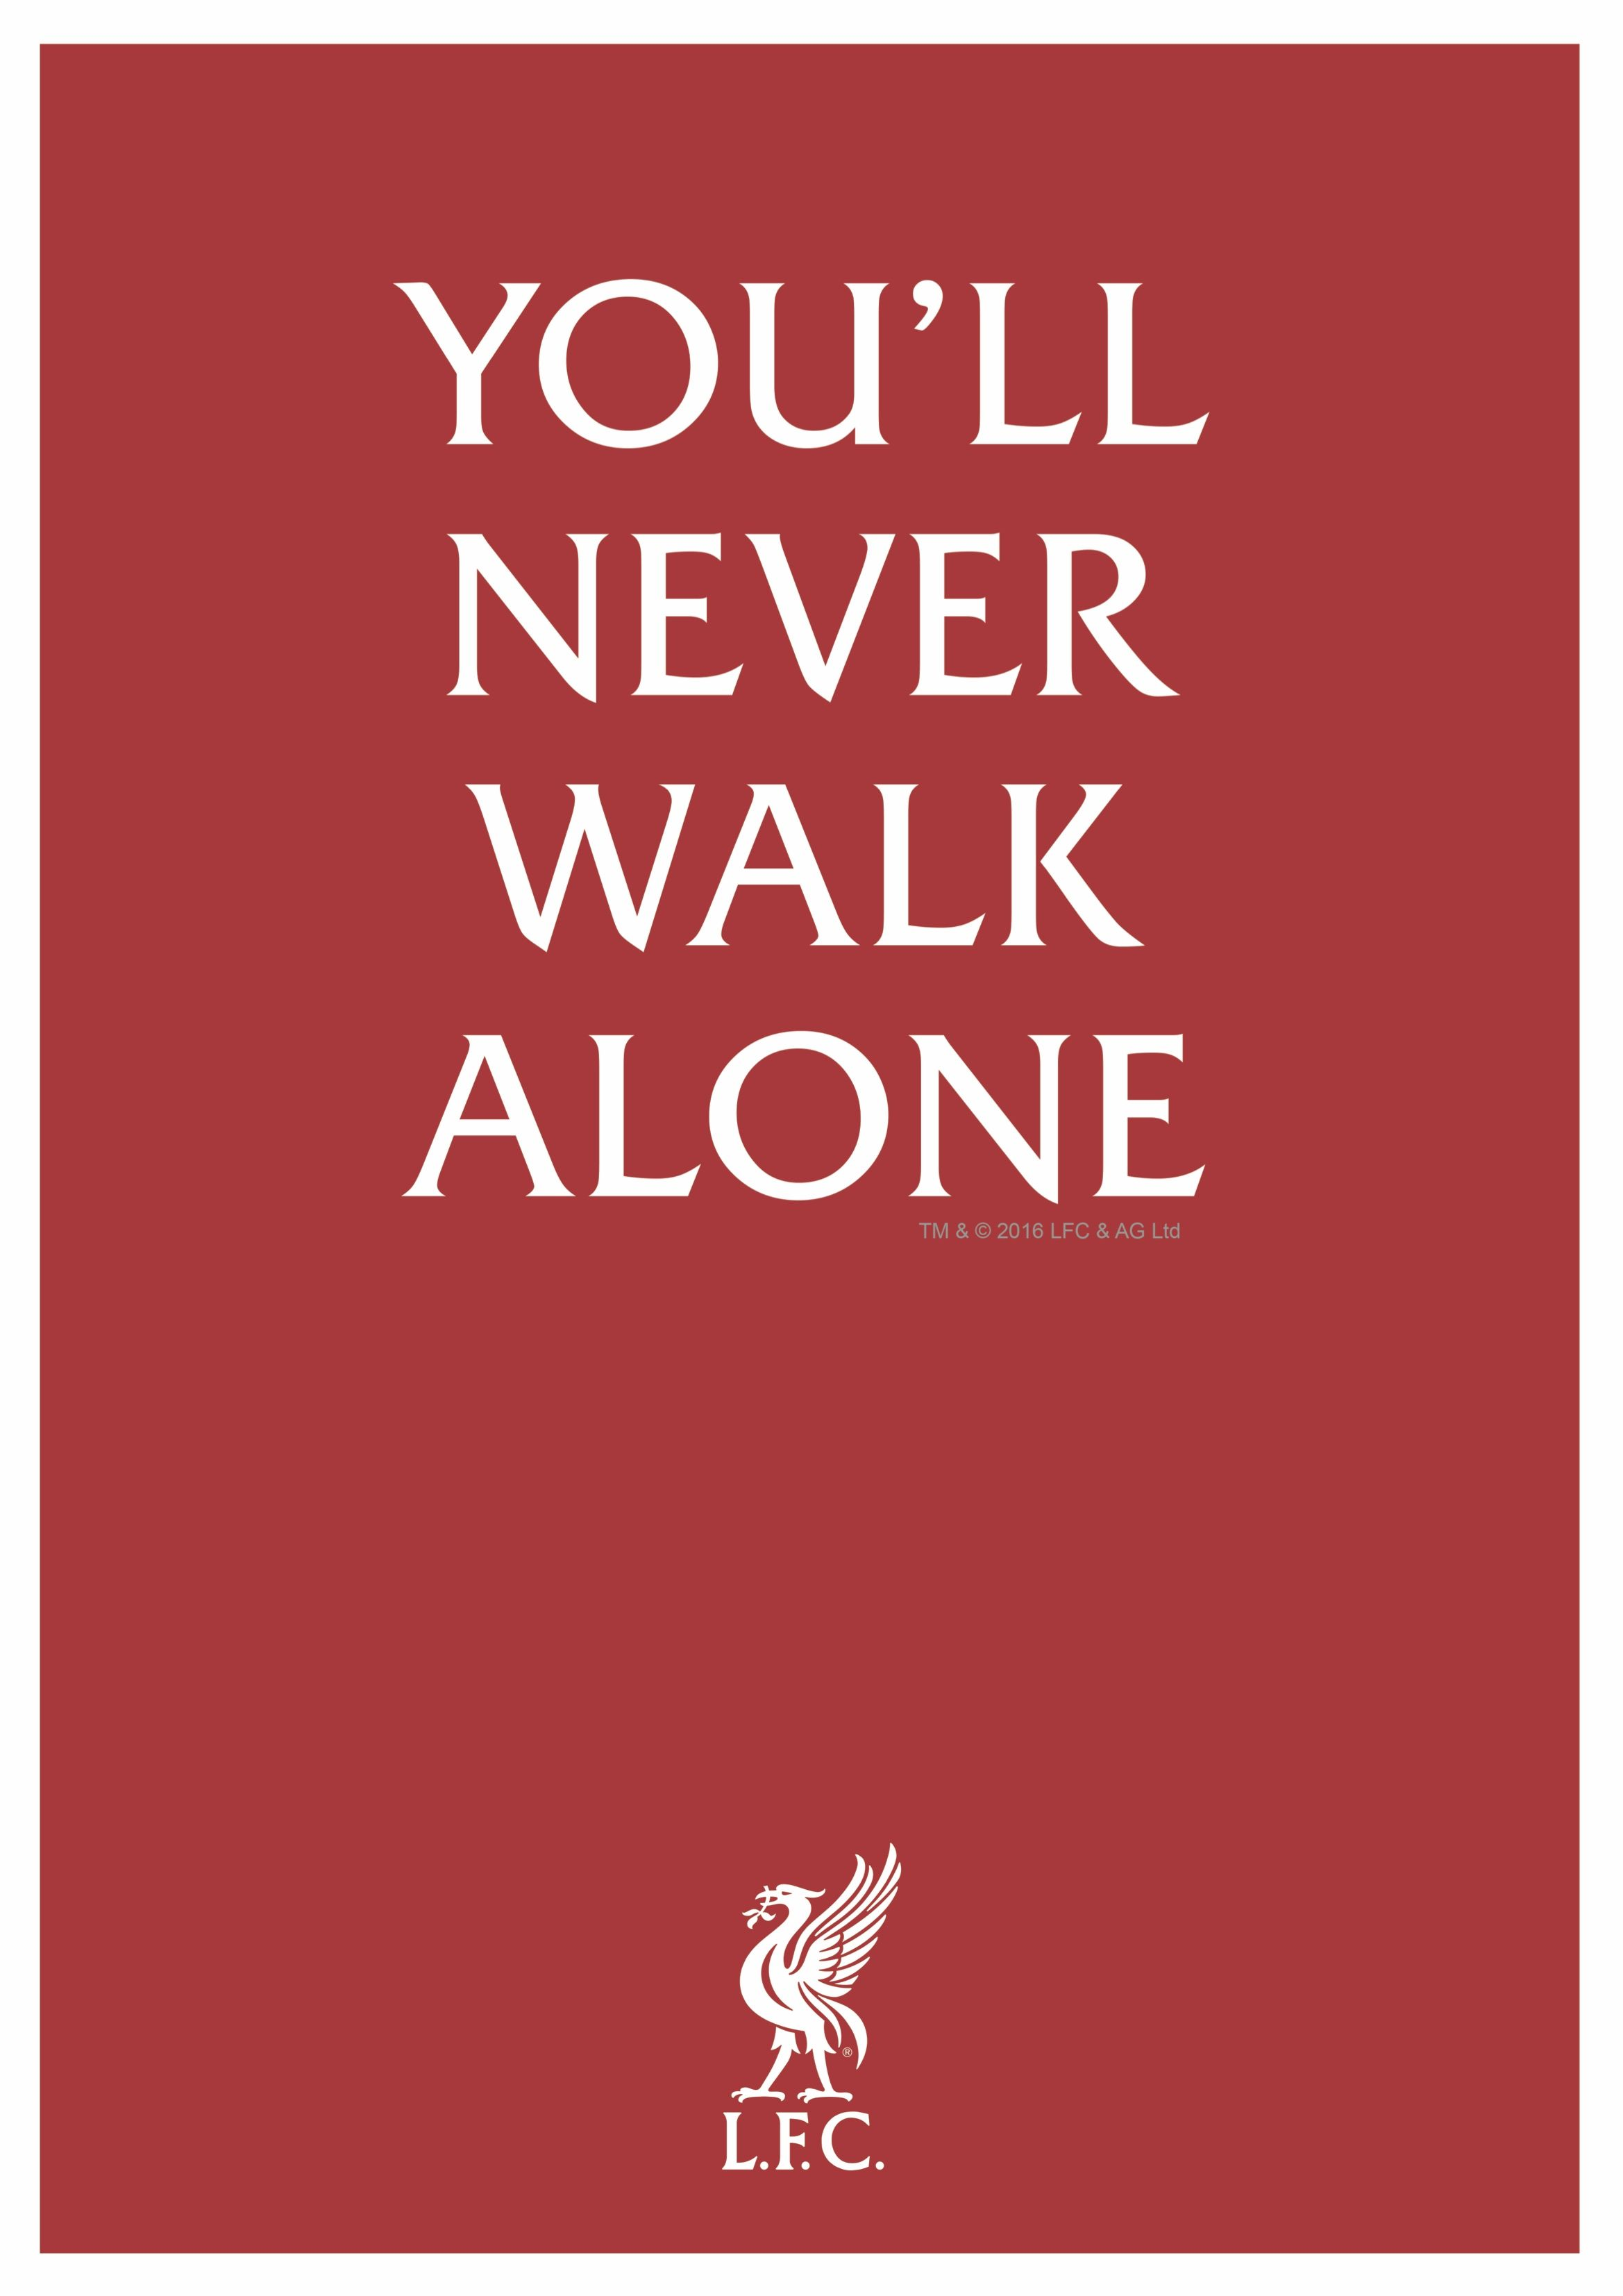 Steven Gerrard Quotes Wallpaper Lfc You Ll Never Walk Alone Rather Says It All